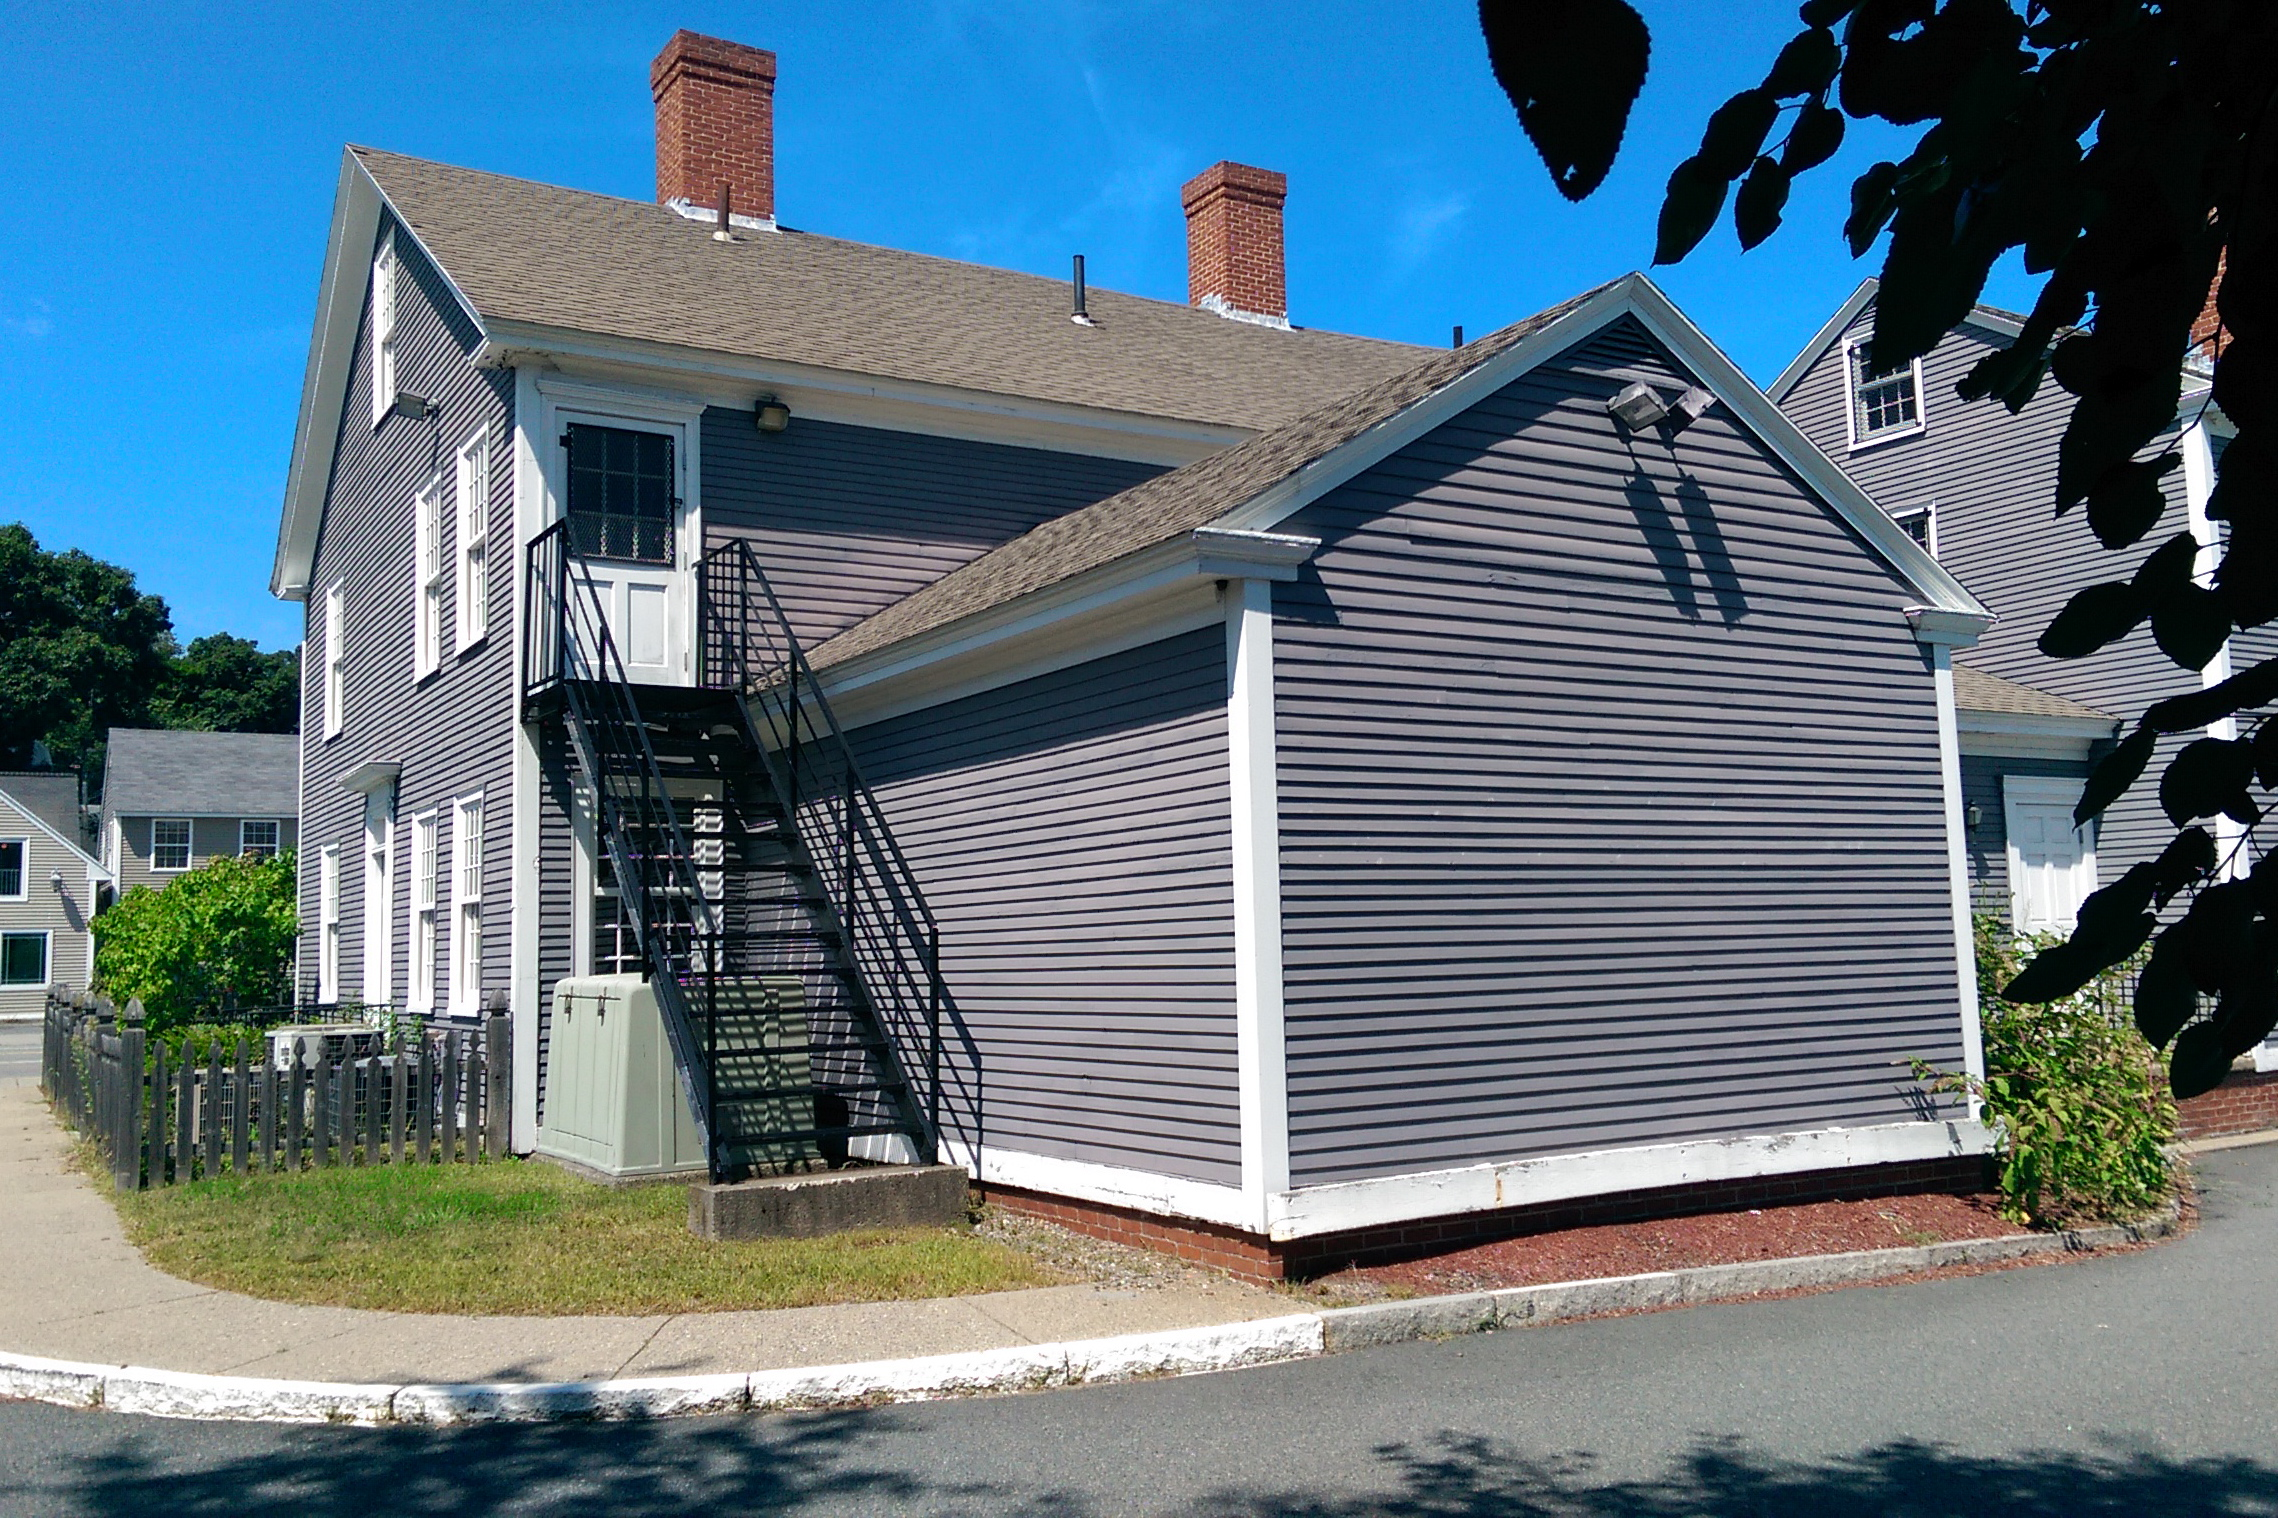 The rear of the Stearns Tavern, behind the main body of the house.